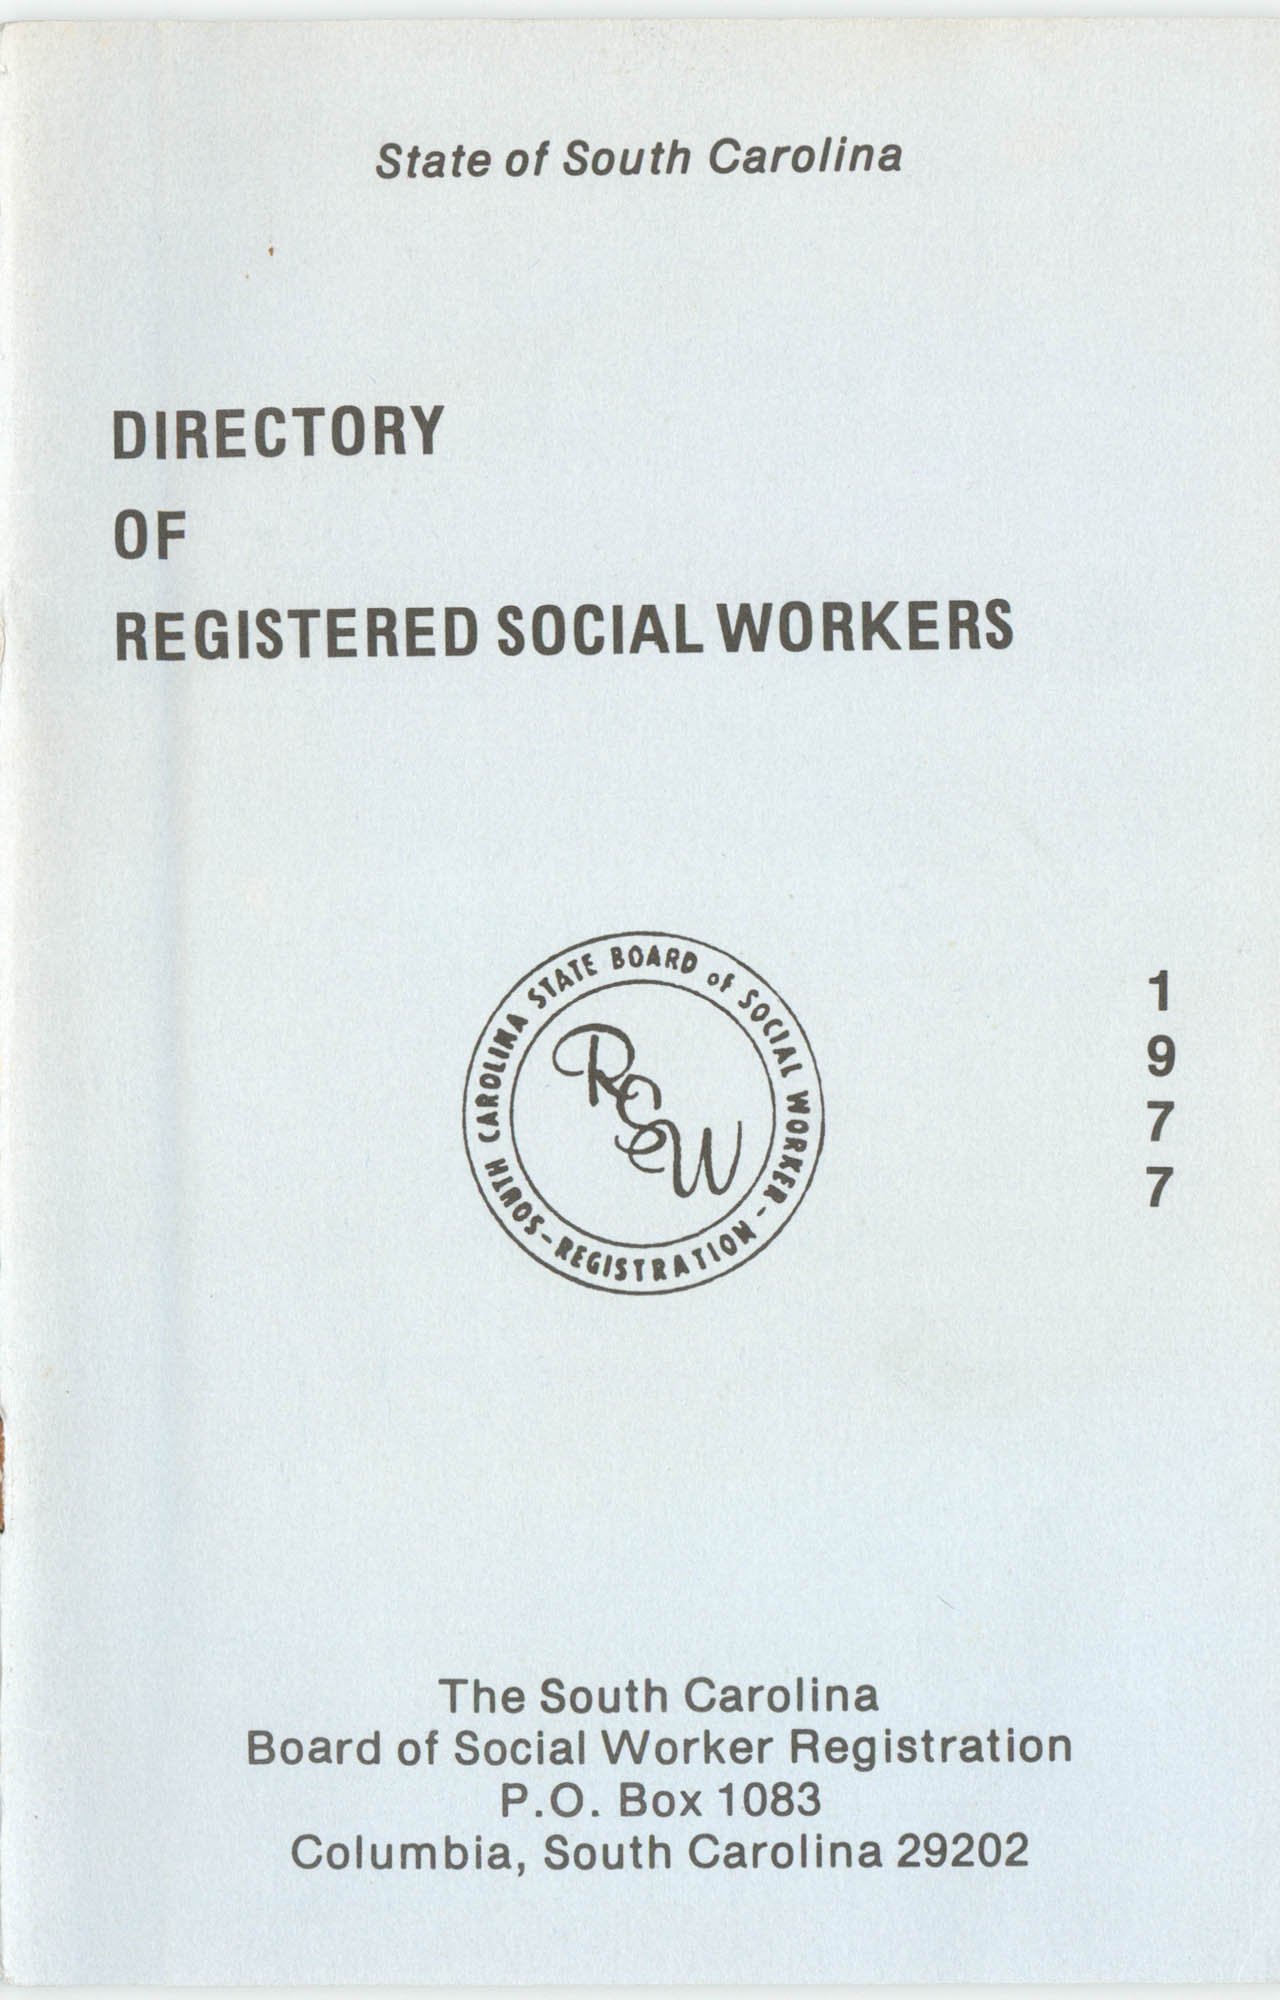 State of South Carolina Directory of Registered Social Workers, 1977, Cover